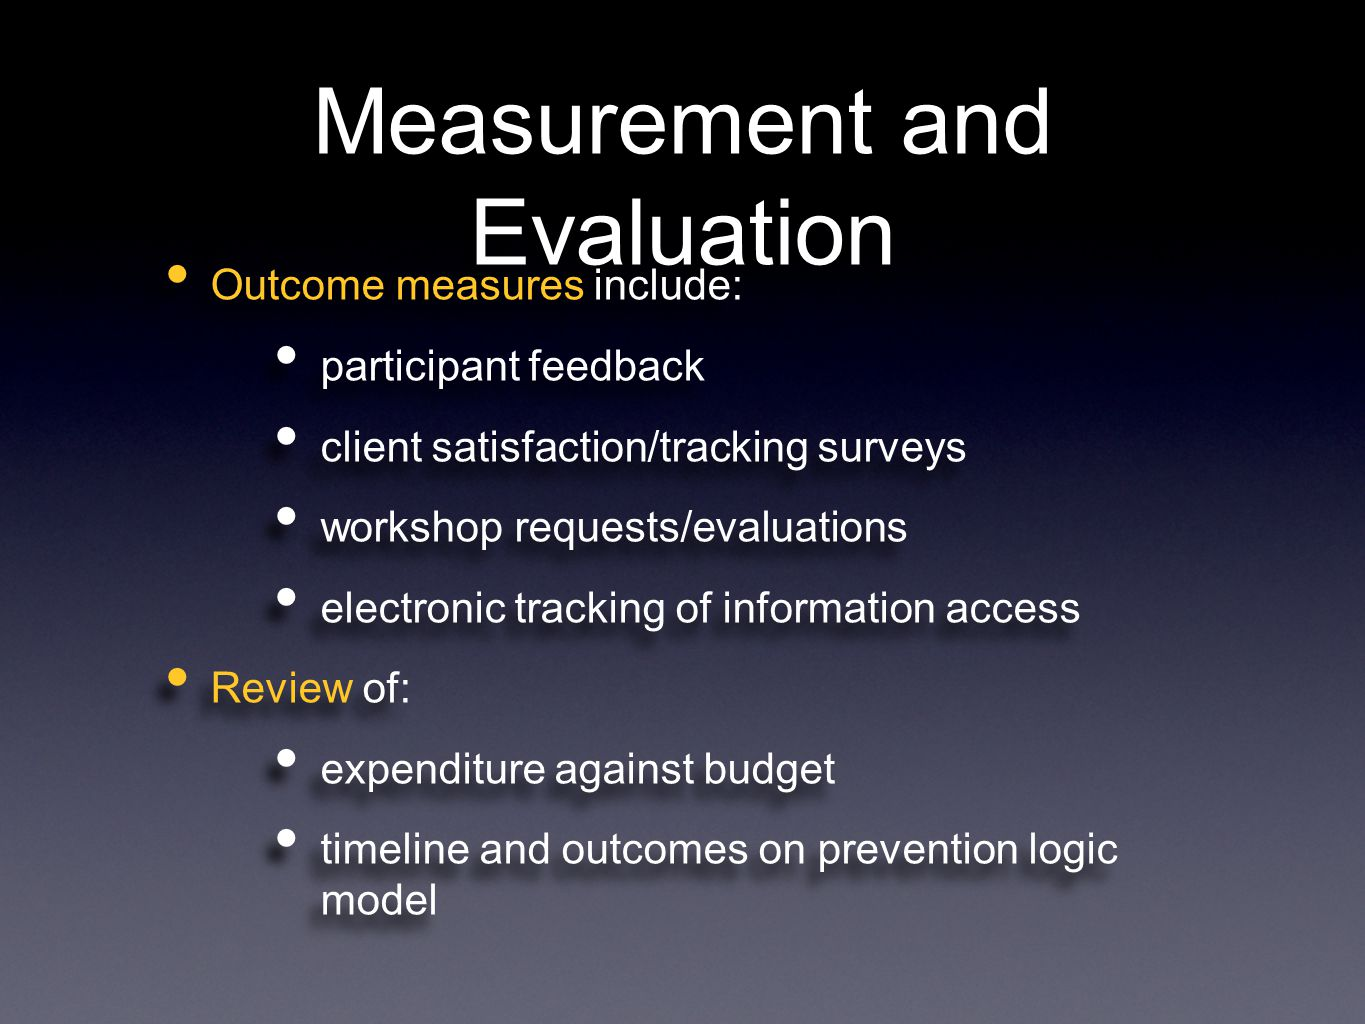 Measurement and Evaluation Outcome measures include: participant feedback client satisfaction/tracking surveys workshop requests/evaluations electronic tracking of information access Review of: expenditure against budget timeline and outcomes on prevention logic model Outcome measures include: participant feedback client satisfaction/tracking surveys workshop requests/evaluations electronic tracking of information access Review of: expenditure against budget timeline and outcomes on prevention logic model